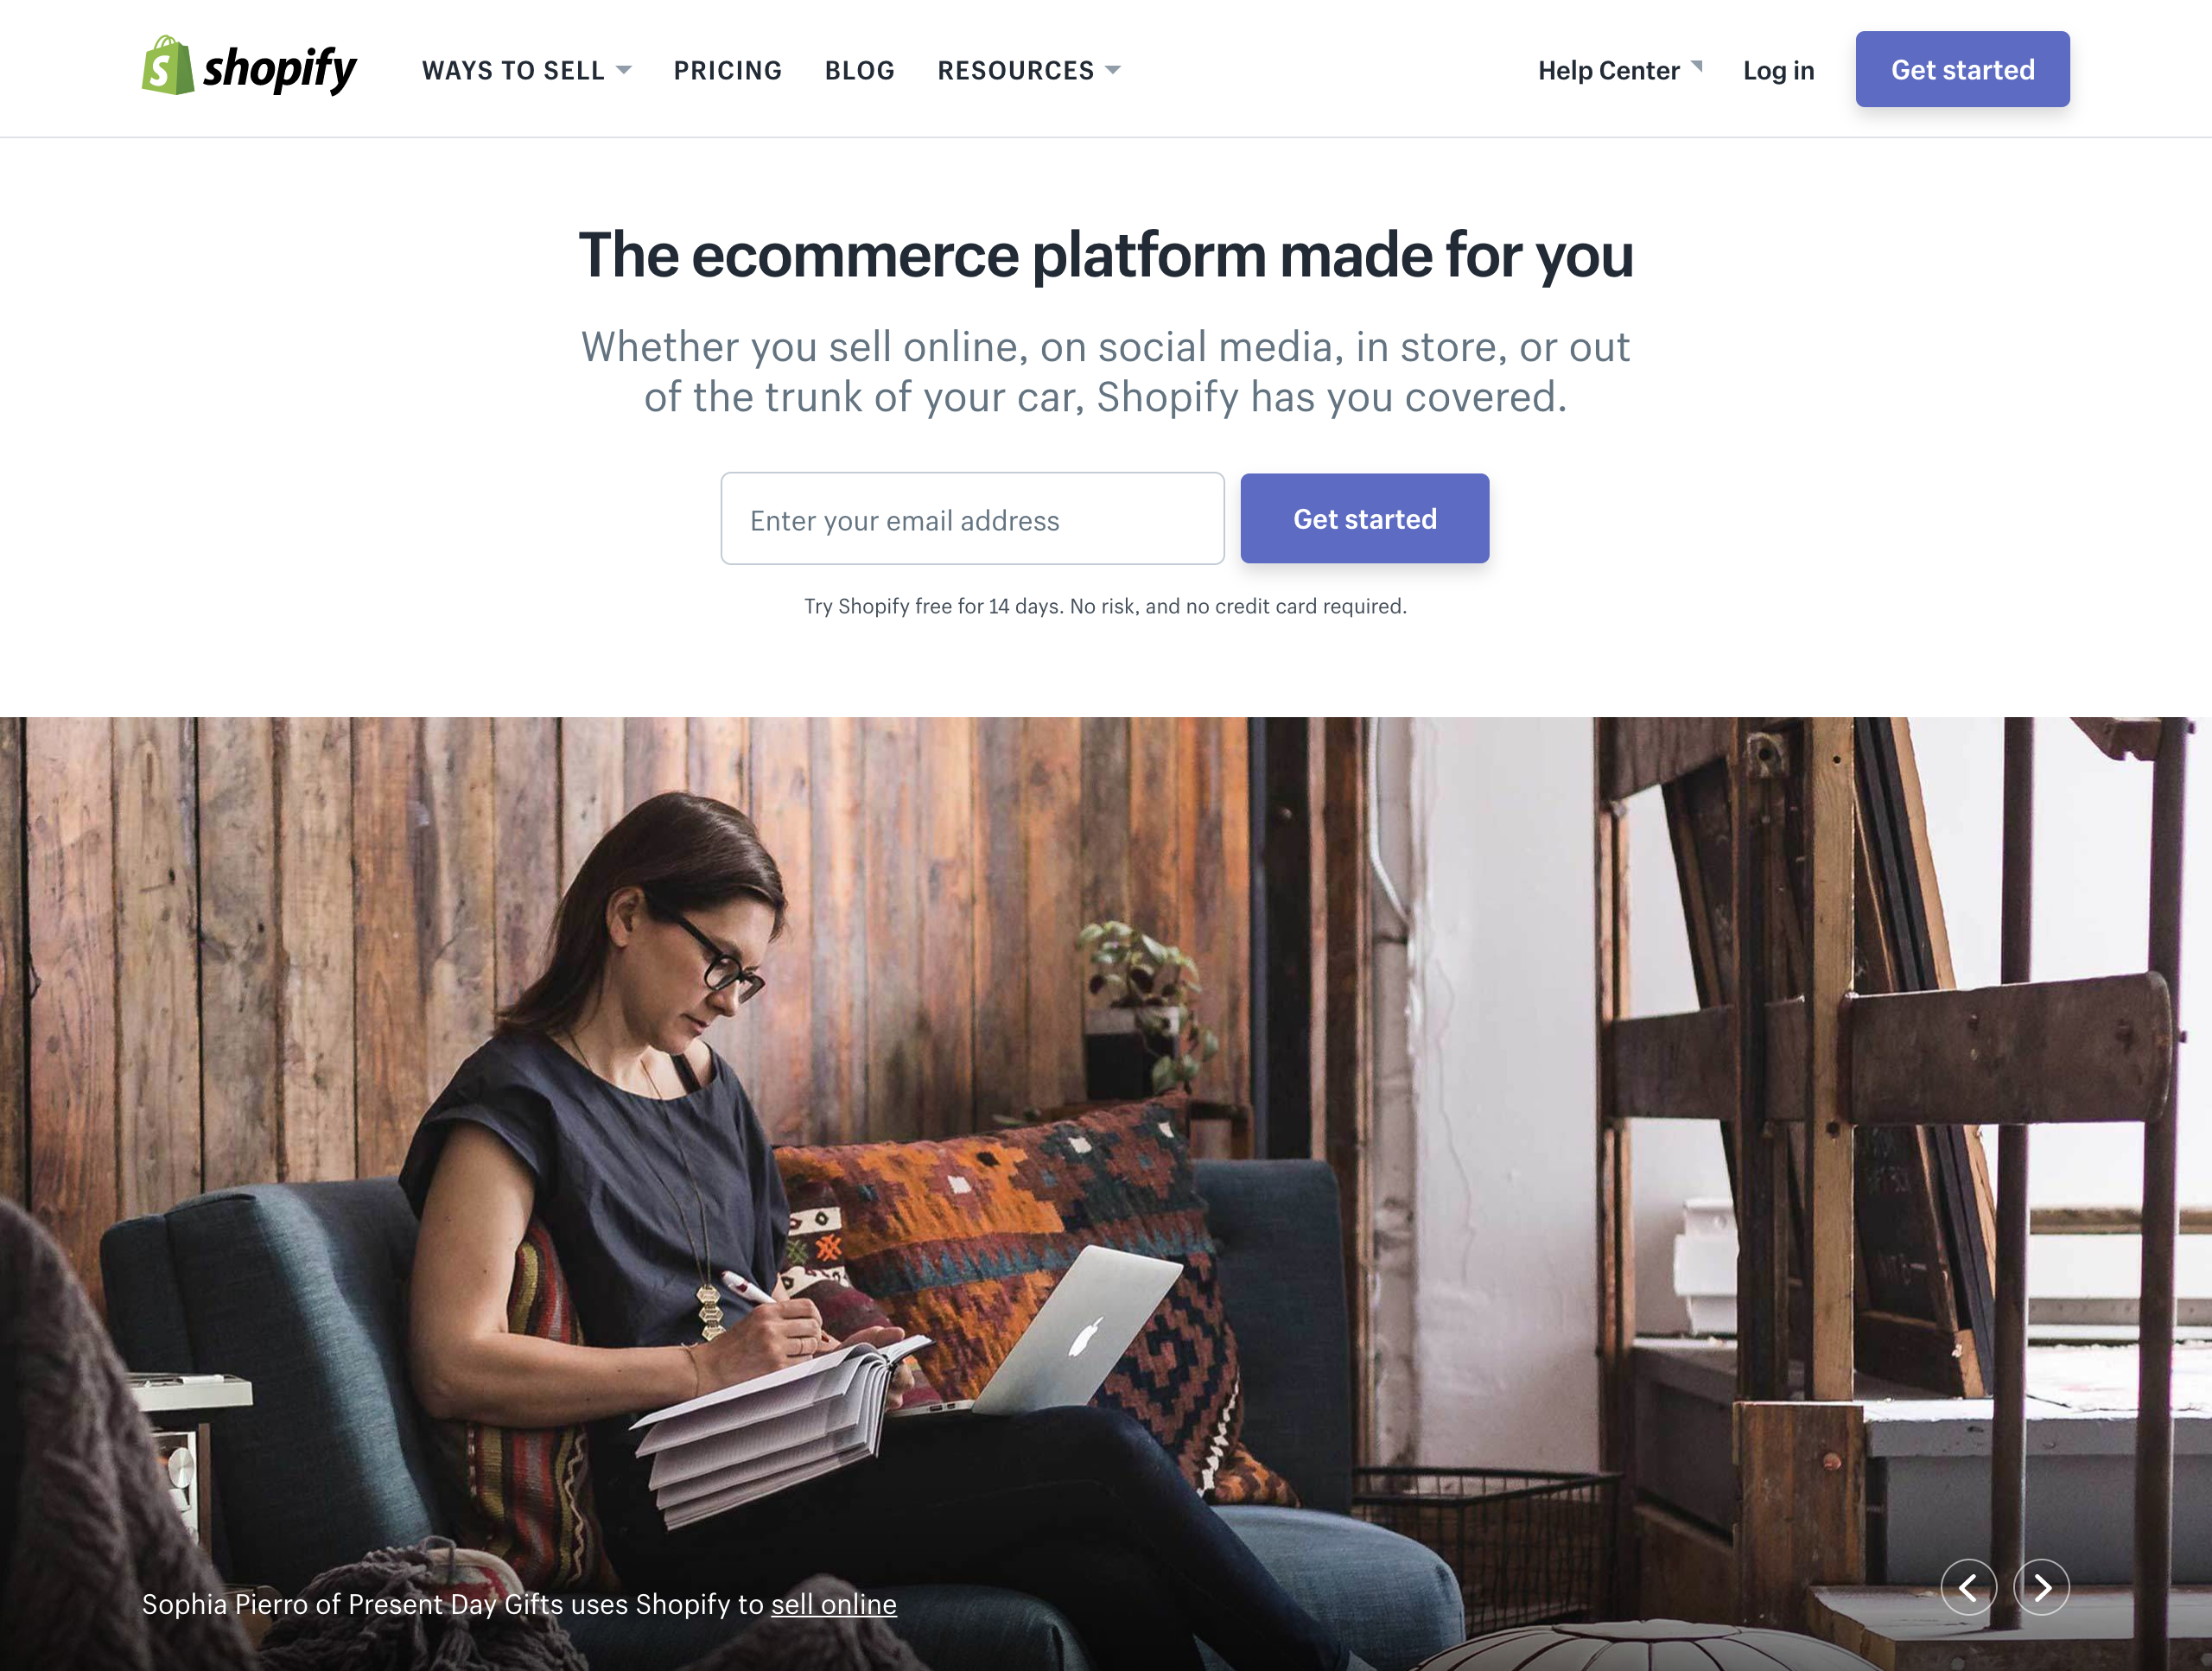 shopify saas ideas for marketing